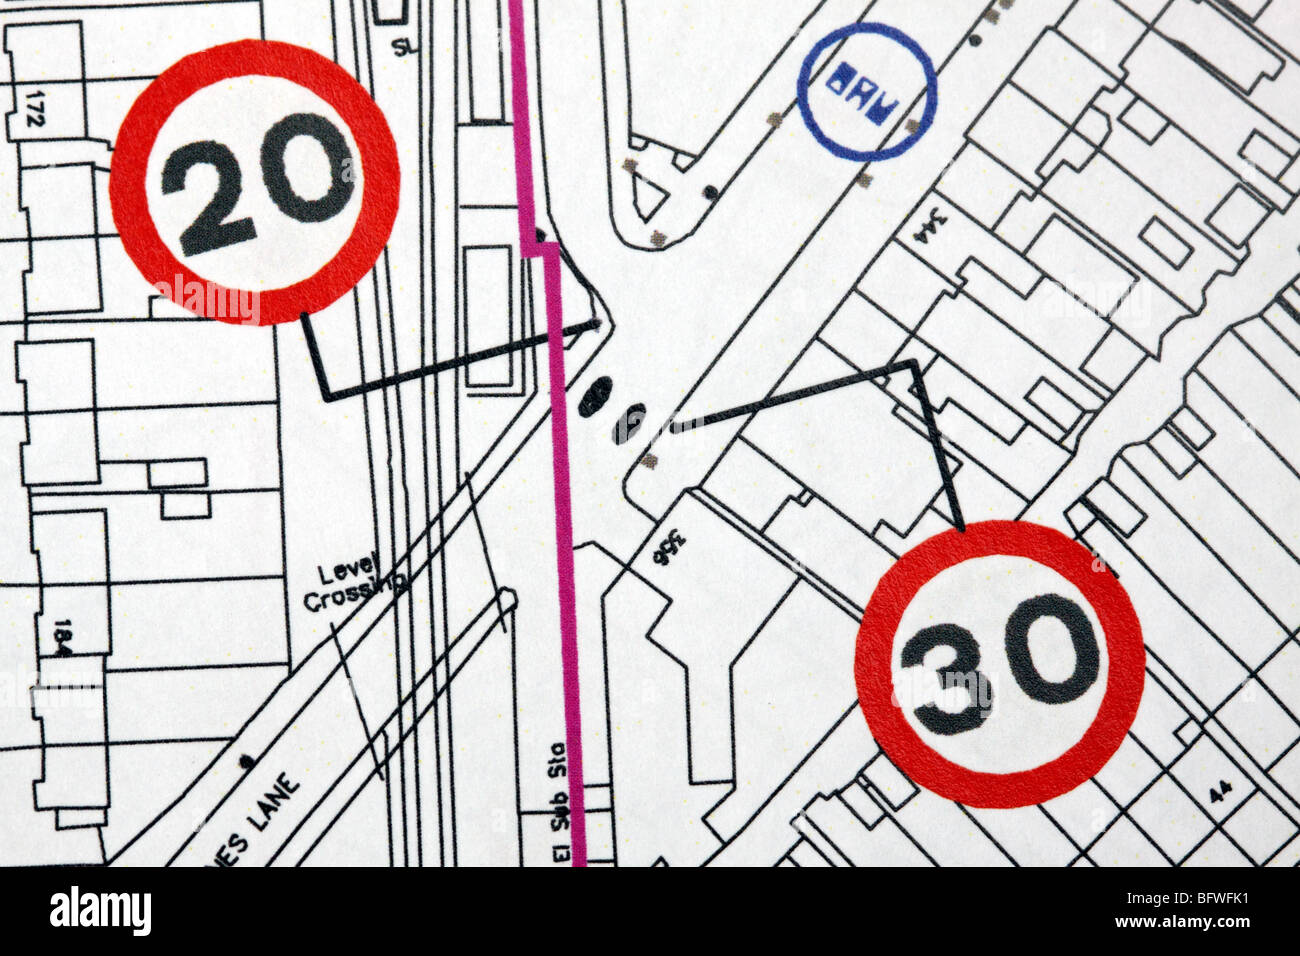 Urban planning road traffic calming 20 mph speed limit sign zones plans in GB UK town city - Stock Image